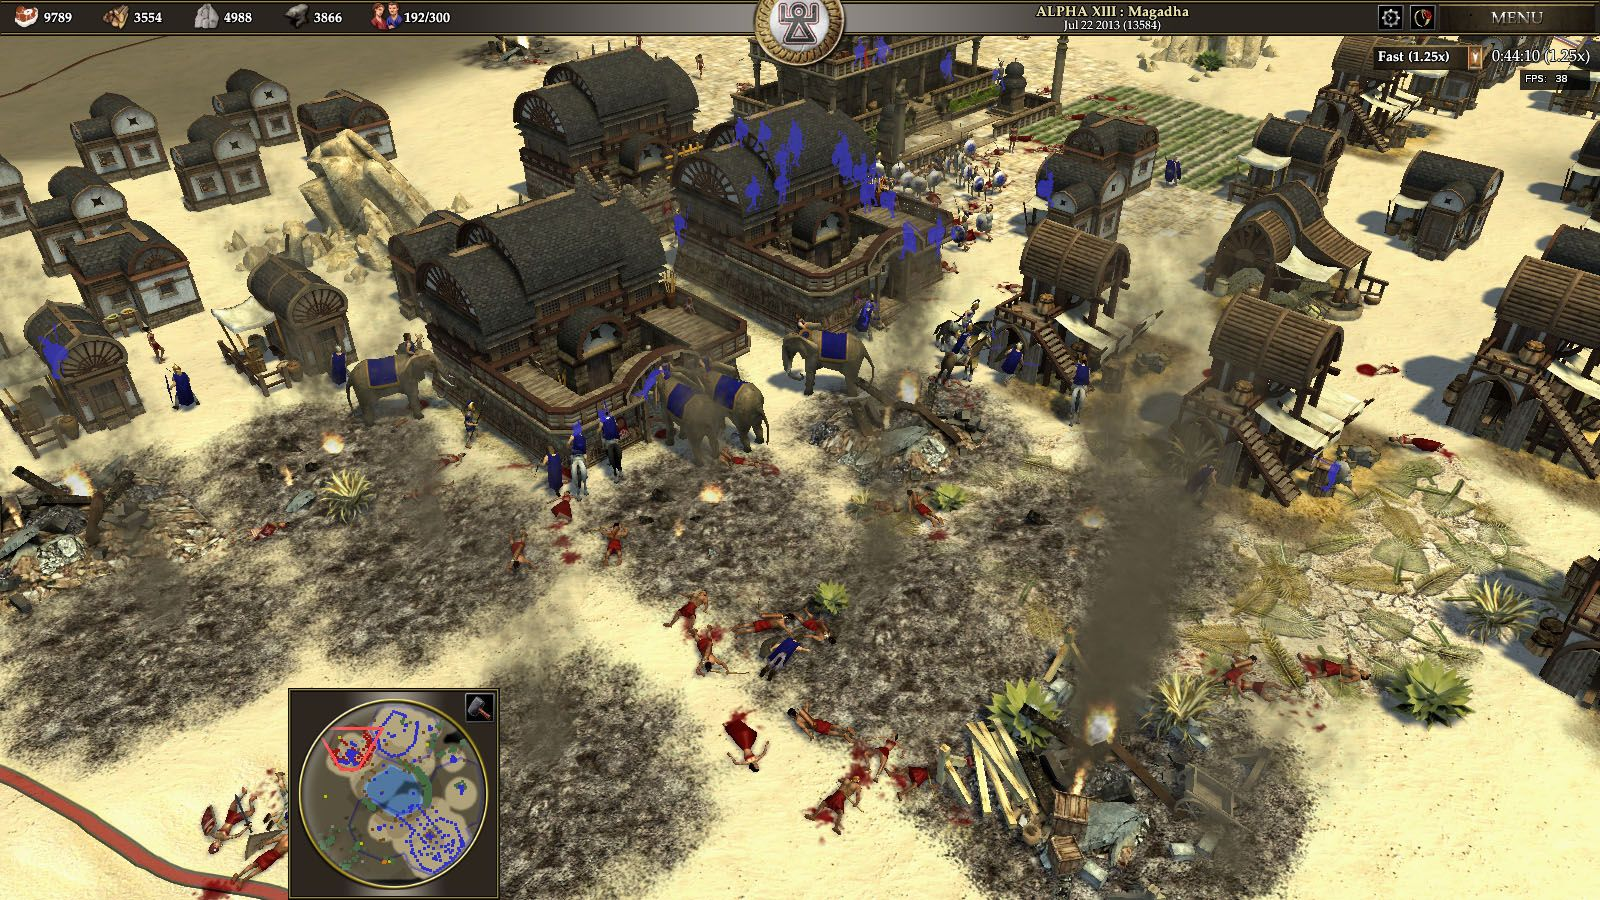 0 A.D. of the the best free open source rts games